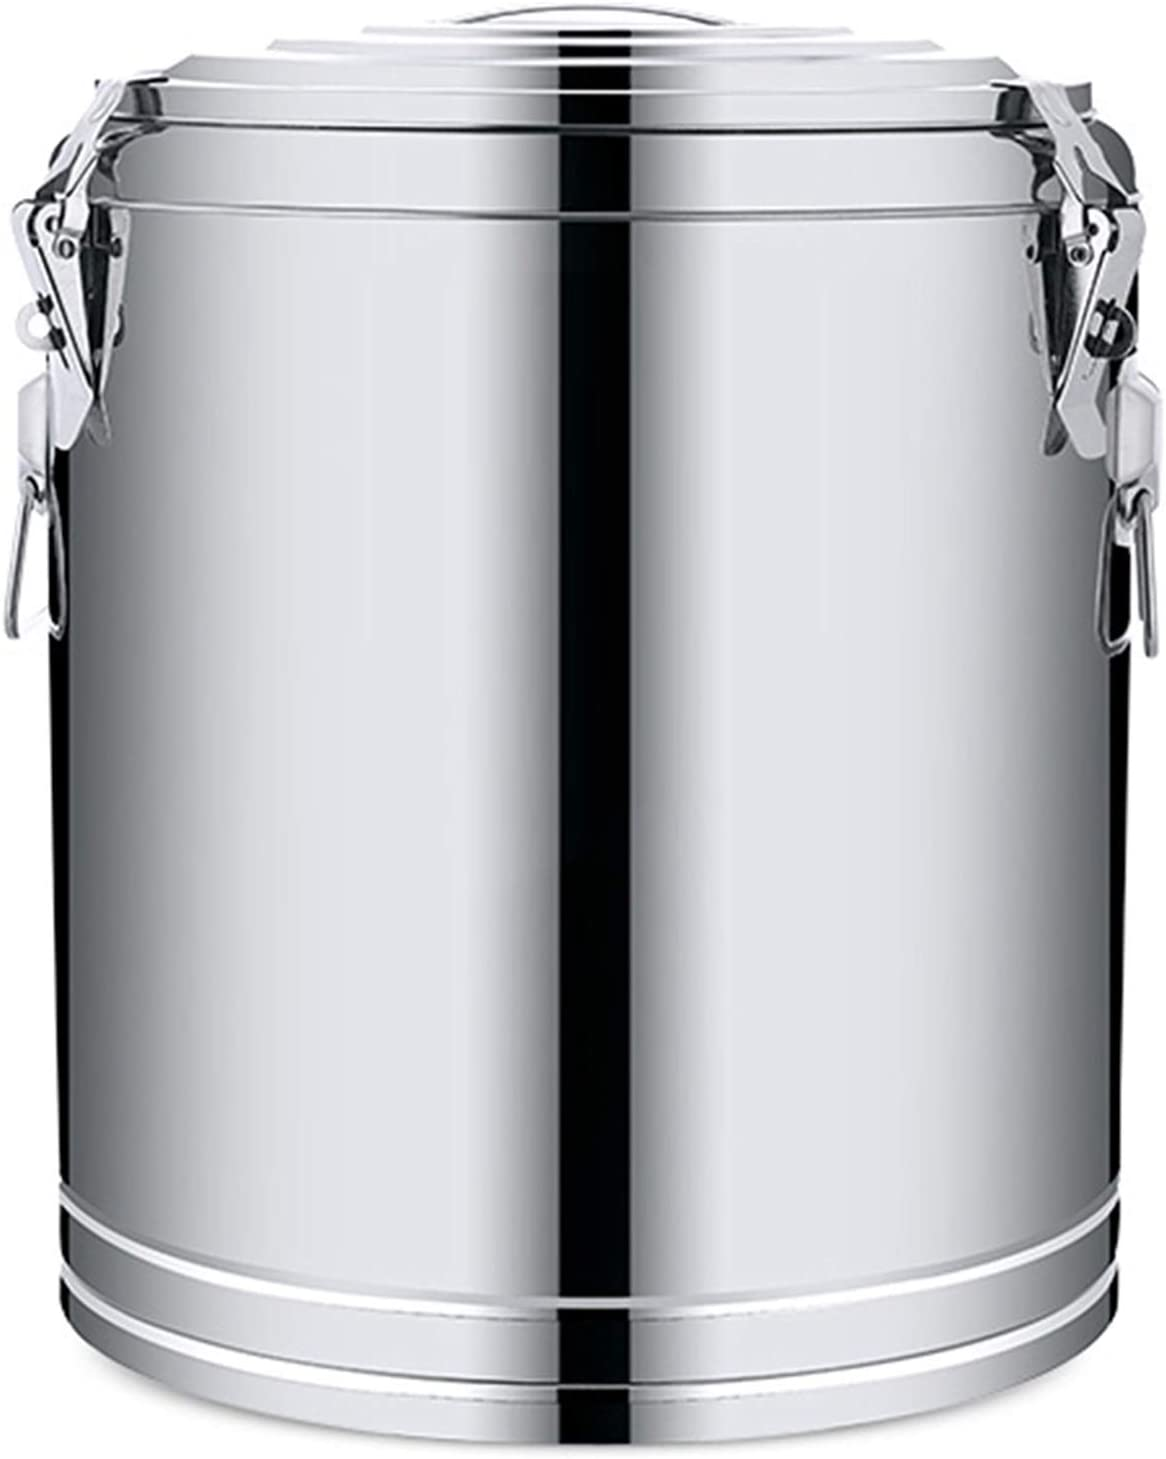 stainless Online limited product steel Large Ice 67% OFF of fixed price Bucket Steel Stainless Storage Barrel